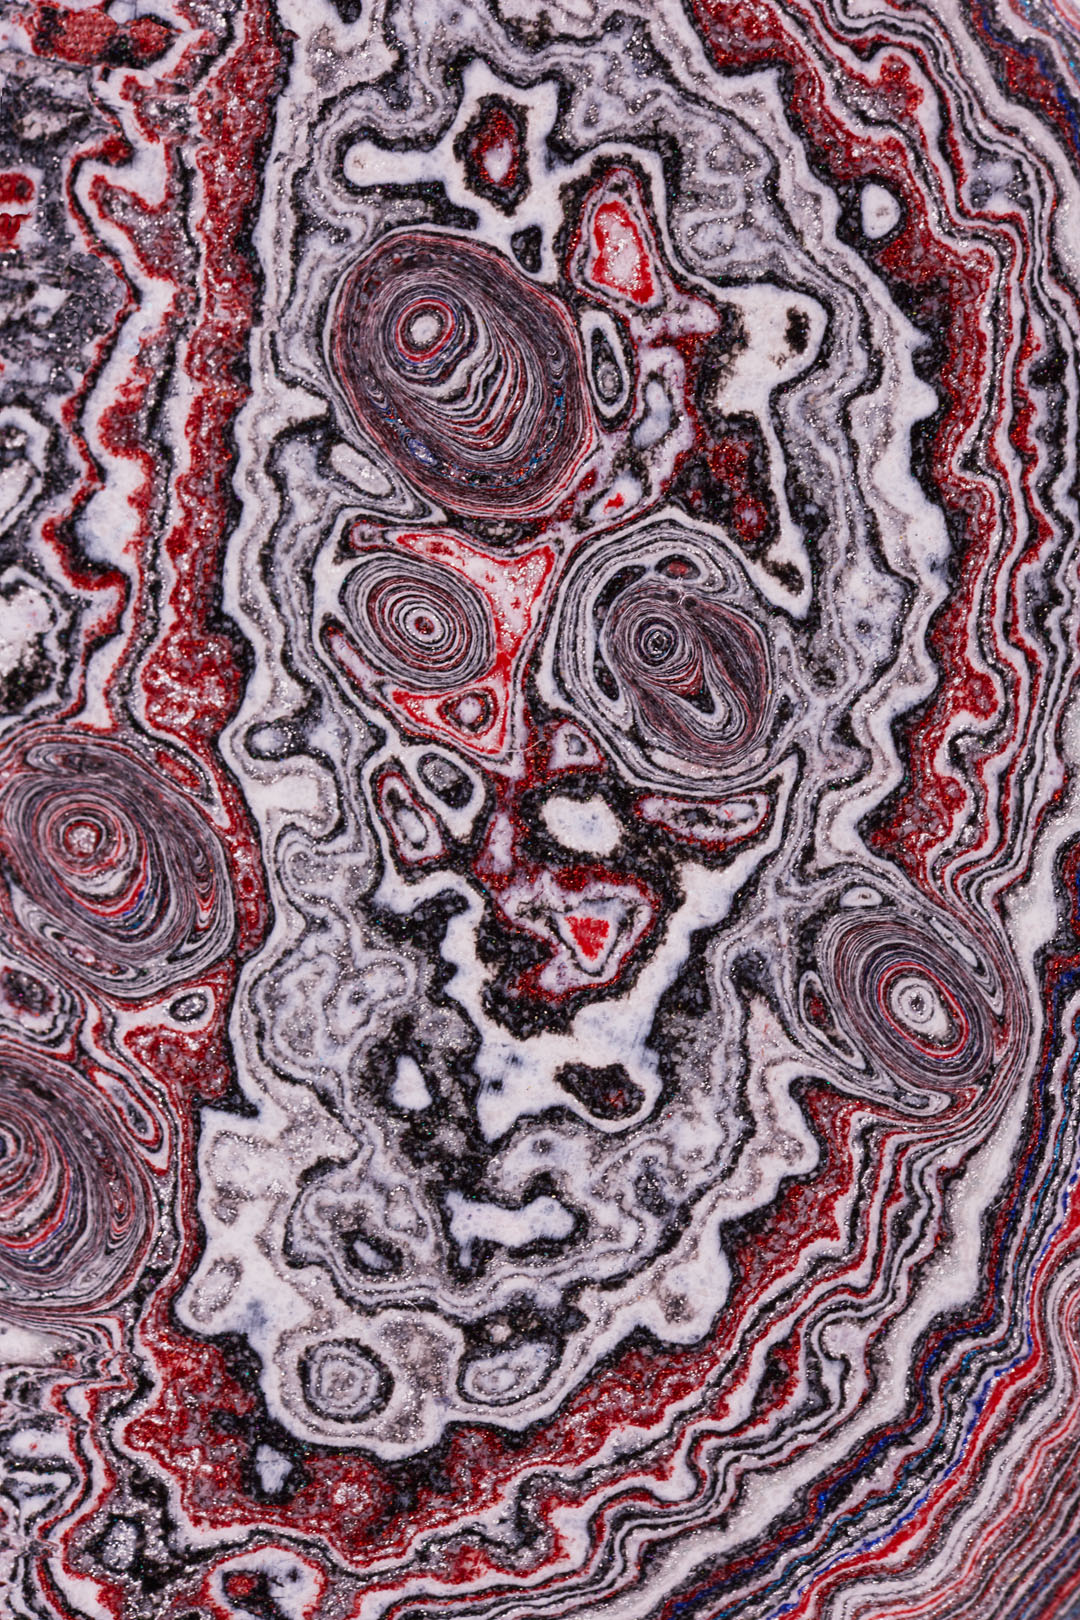 And then suddenly Jupiter in the microscopic folds of Fordite